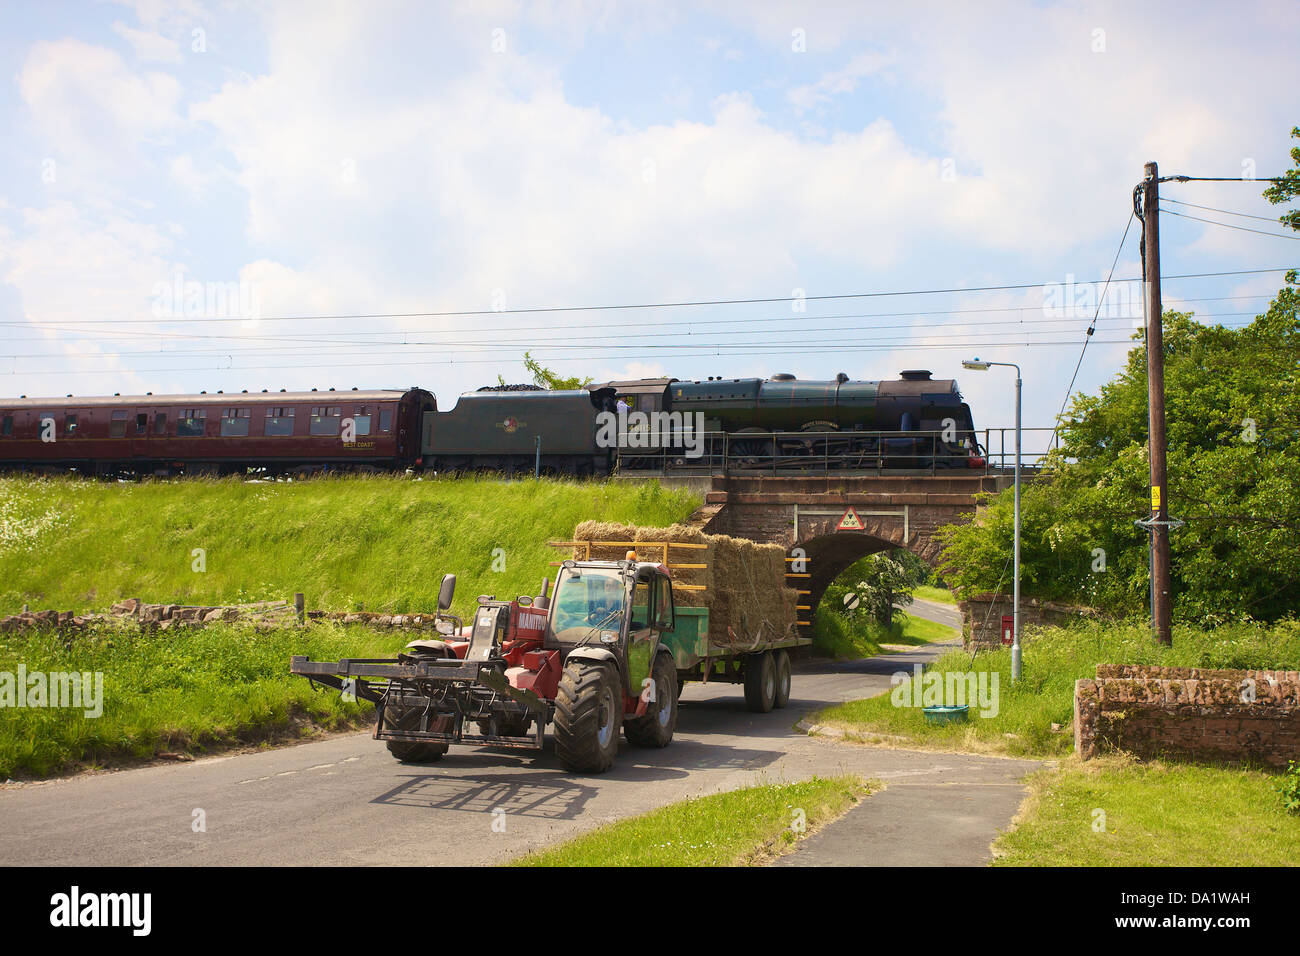 LMS Royal Scot Class 6115 Scots Guardsman steam train at Plumpton on the West Coast Main Line Railway with telehandler. - Stock Image